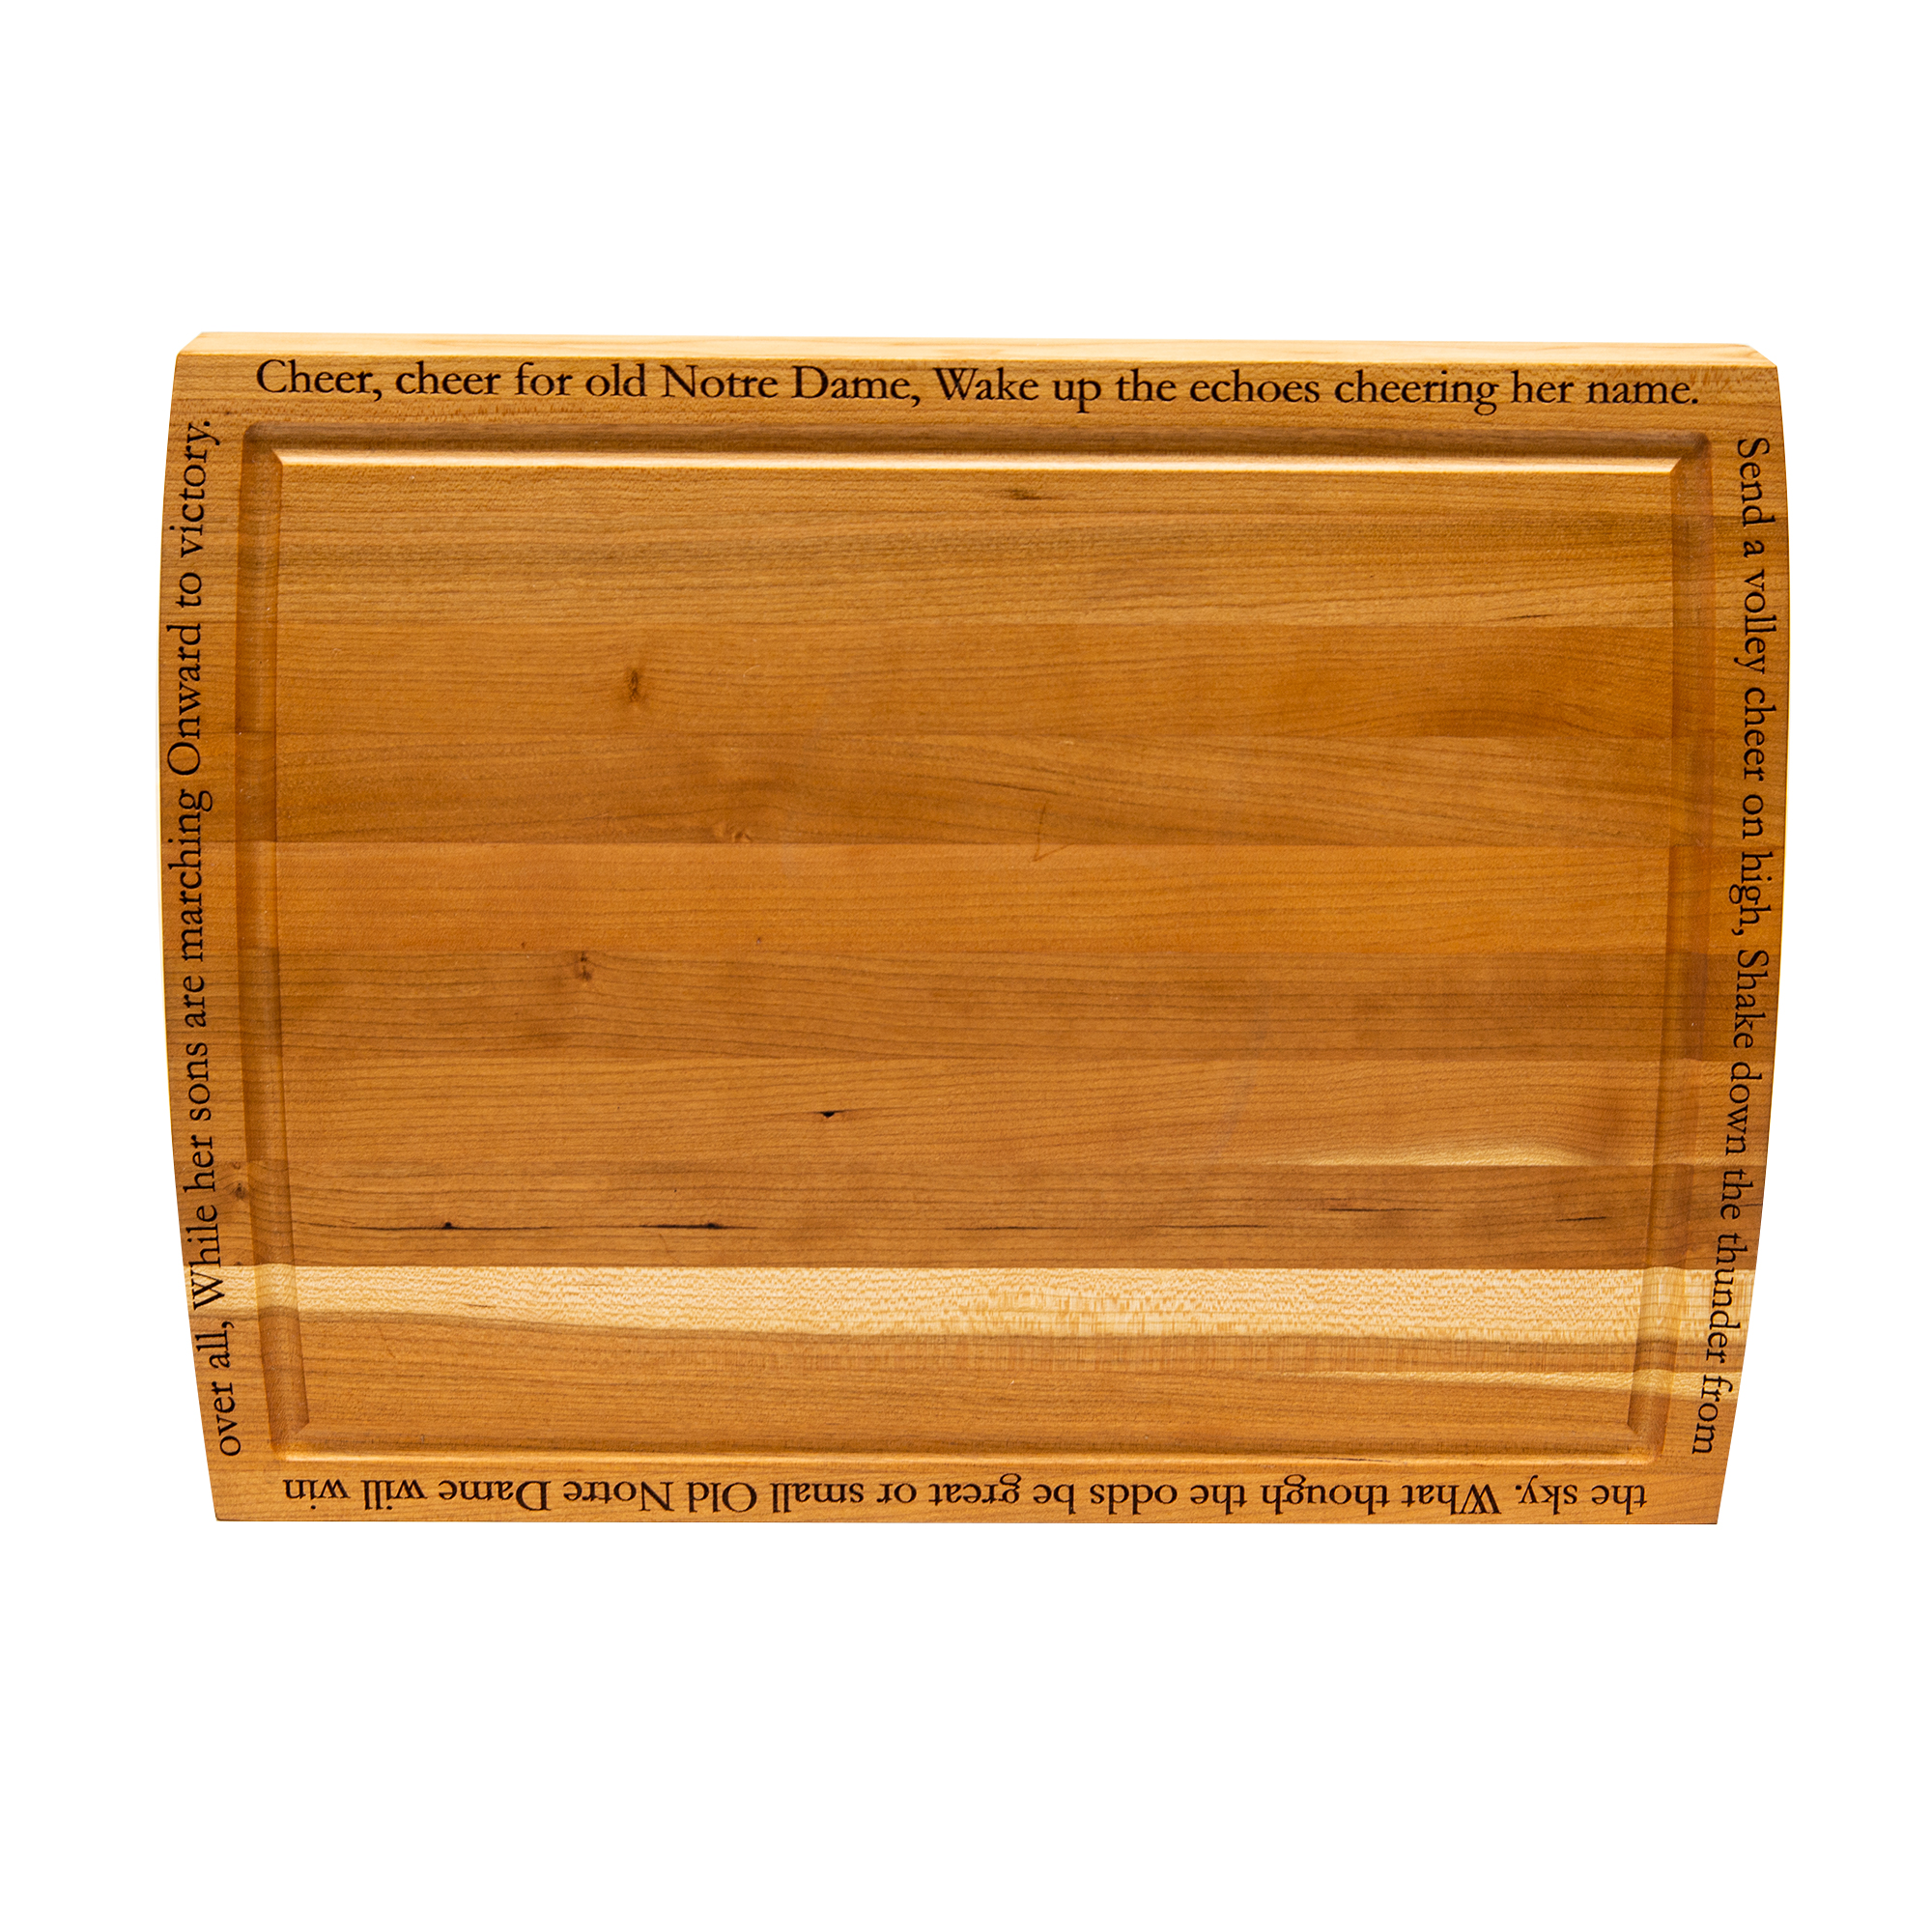 University of Notre Dame Fight Song Cutting Board